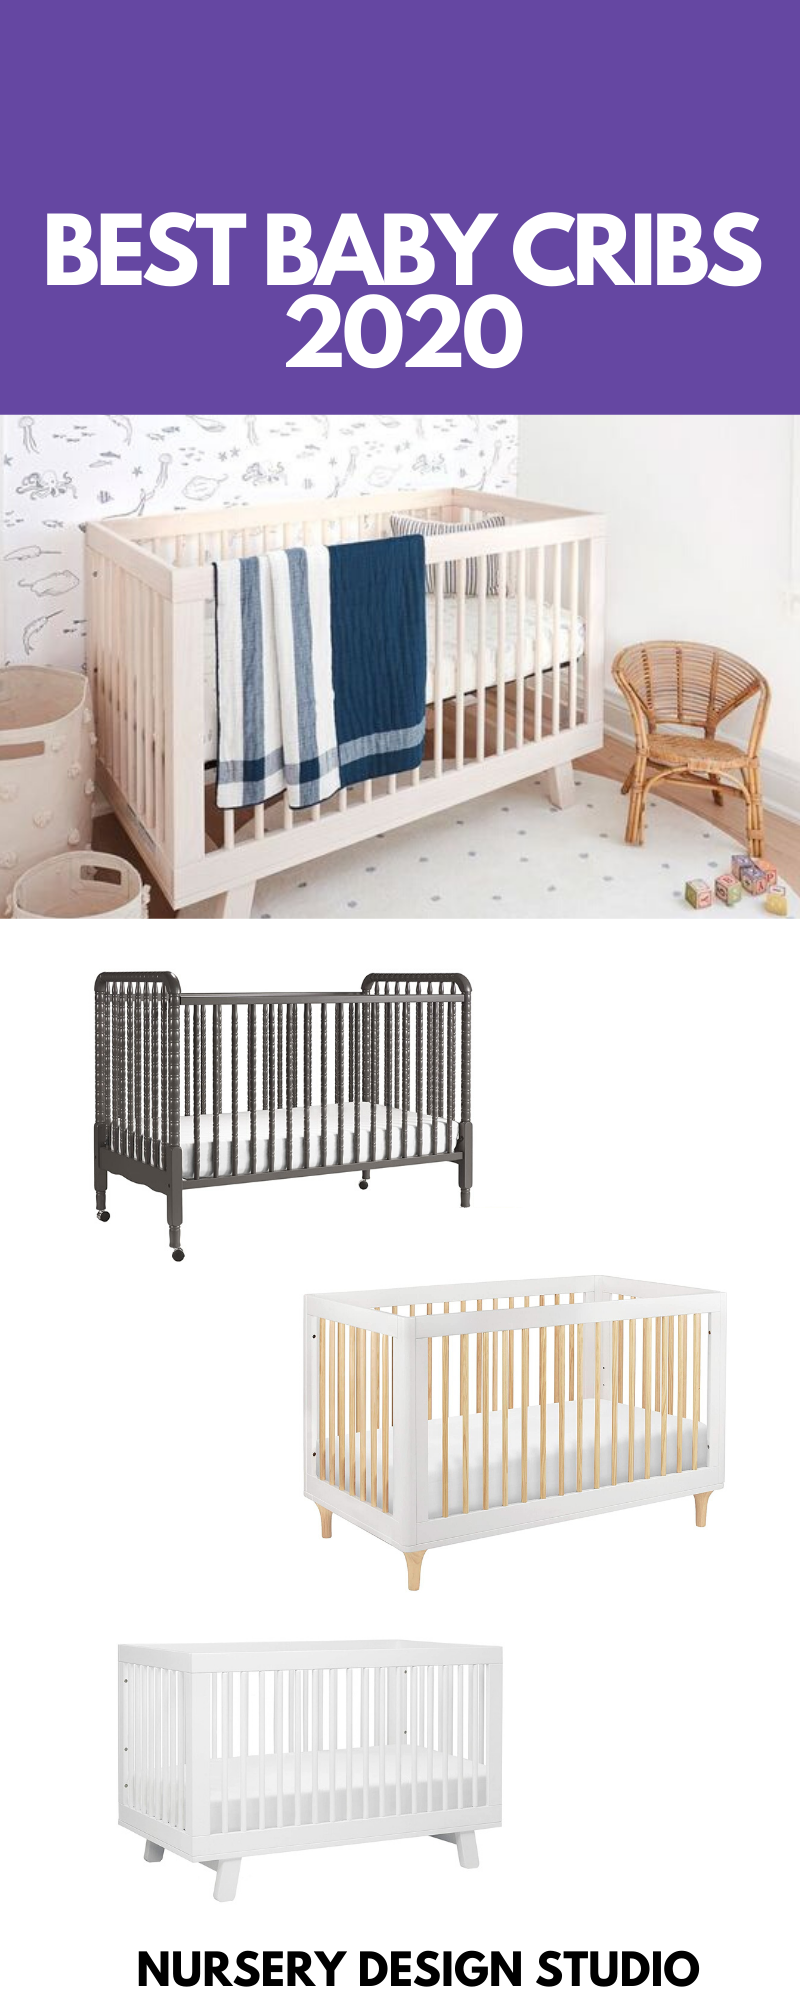 BEST BABY CRIBS 2020